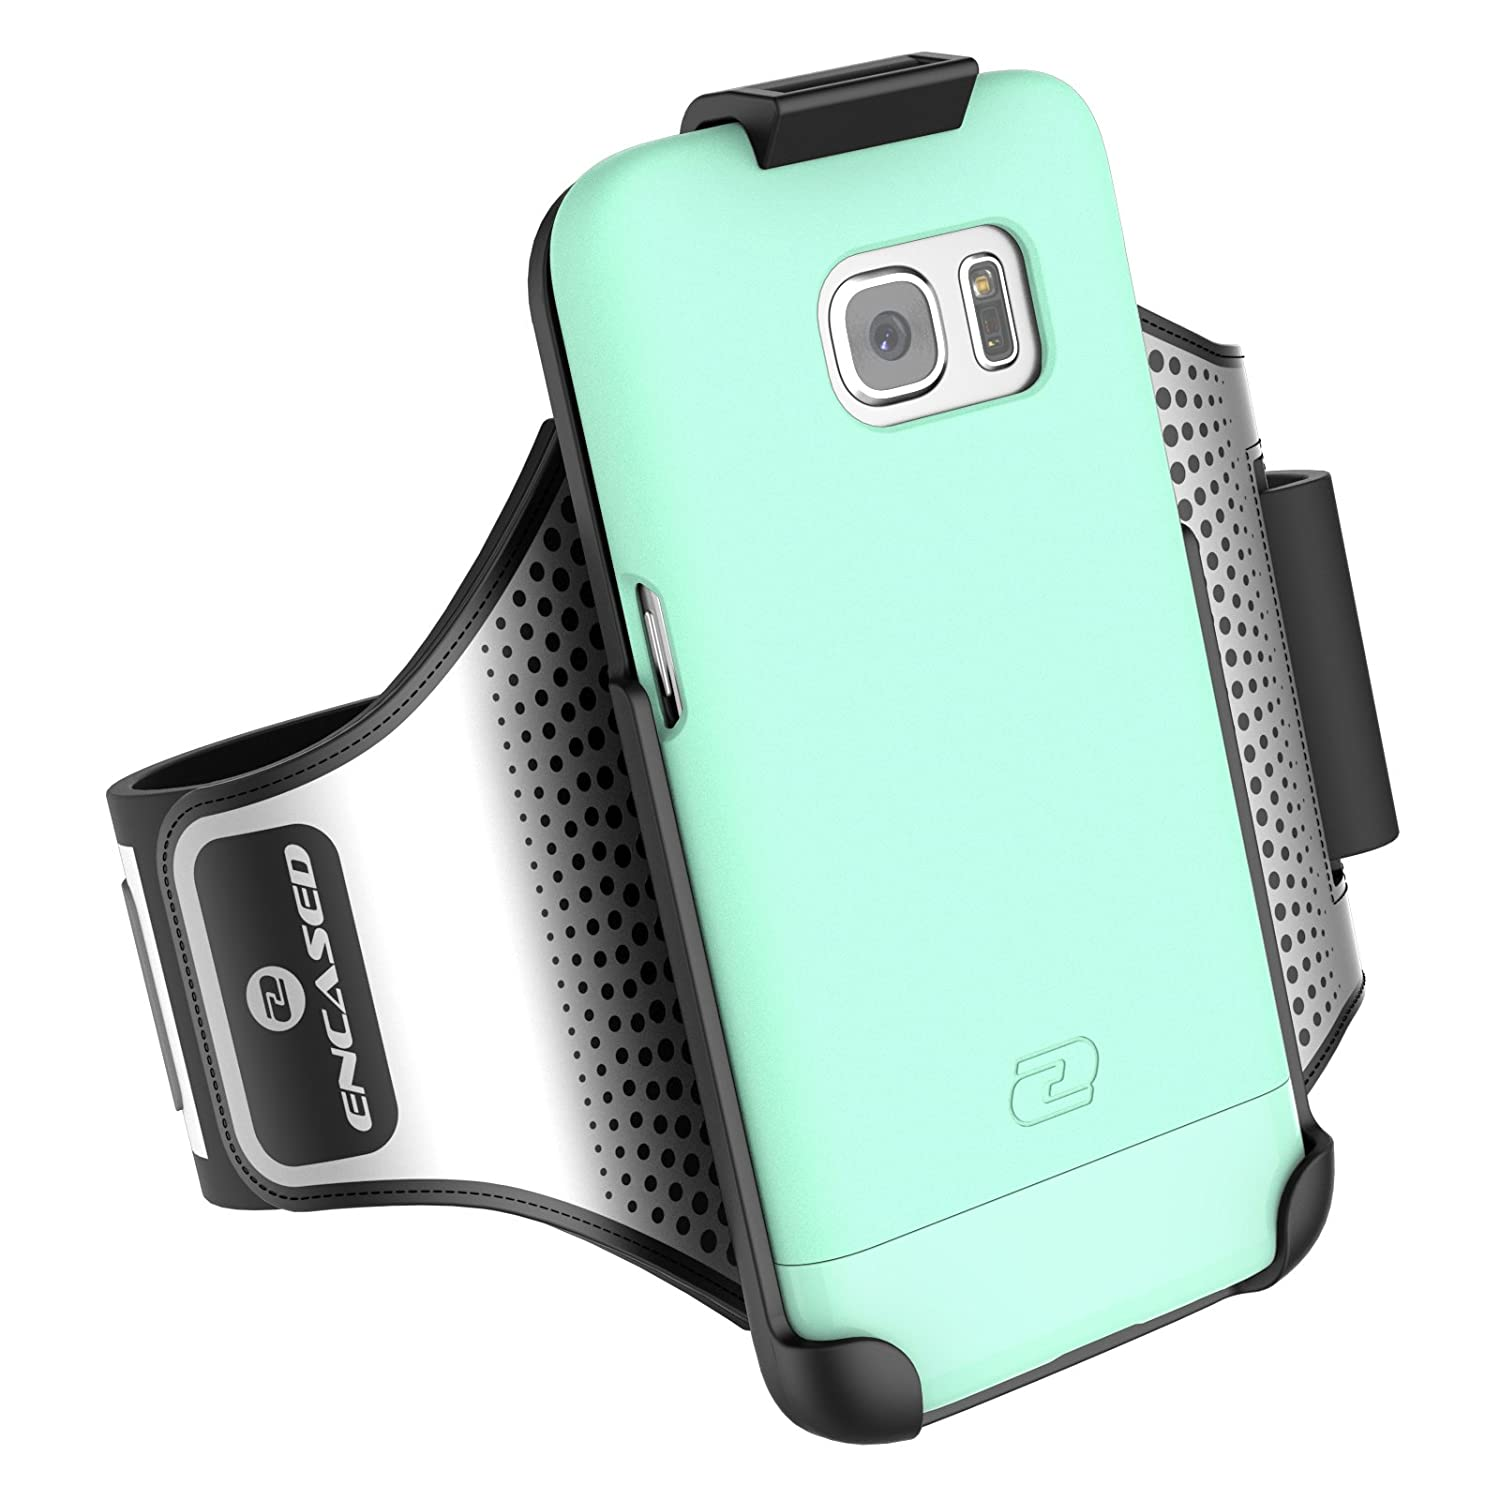 Galaxy S7 Edge Armband & Sport Case (2 pc set) includes Encased Click-N-Go Arm Band + Hybrid Cover (Mint Green)